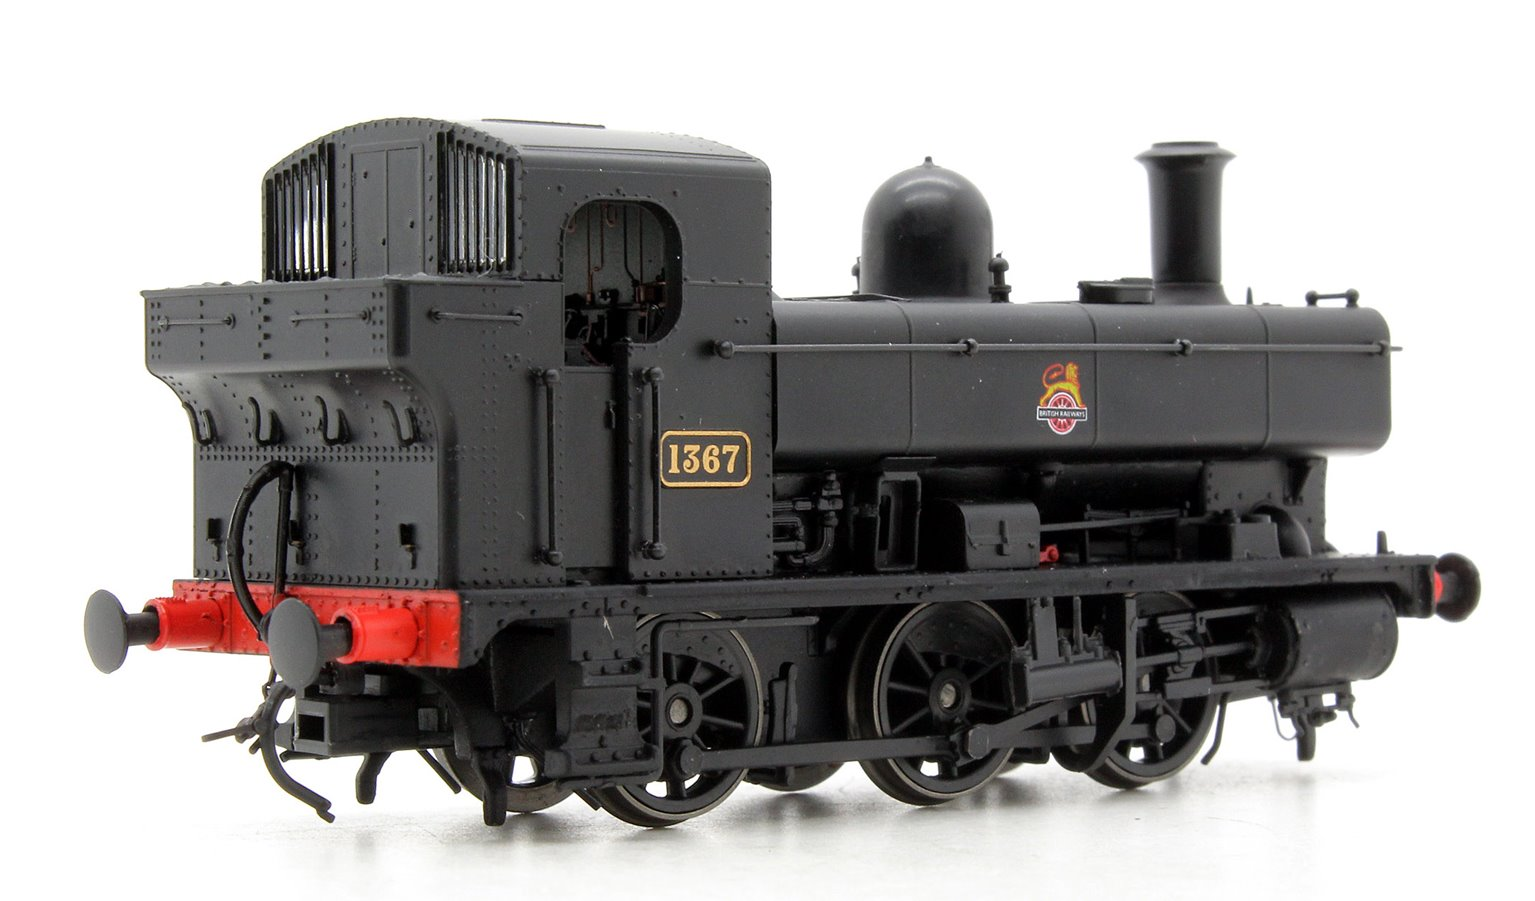 Class 1366 0-6-0PT 1367 in BR black with early crest